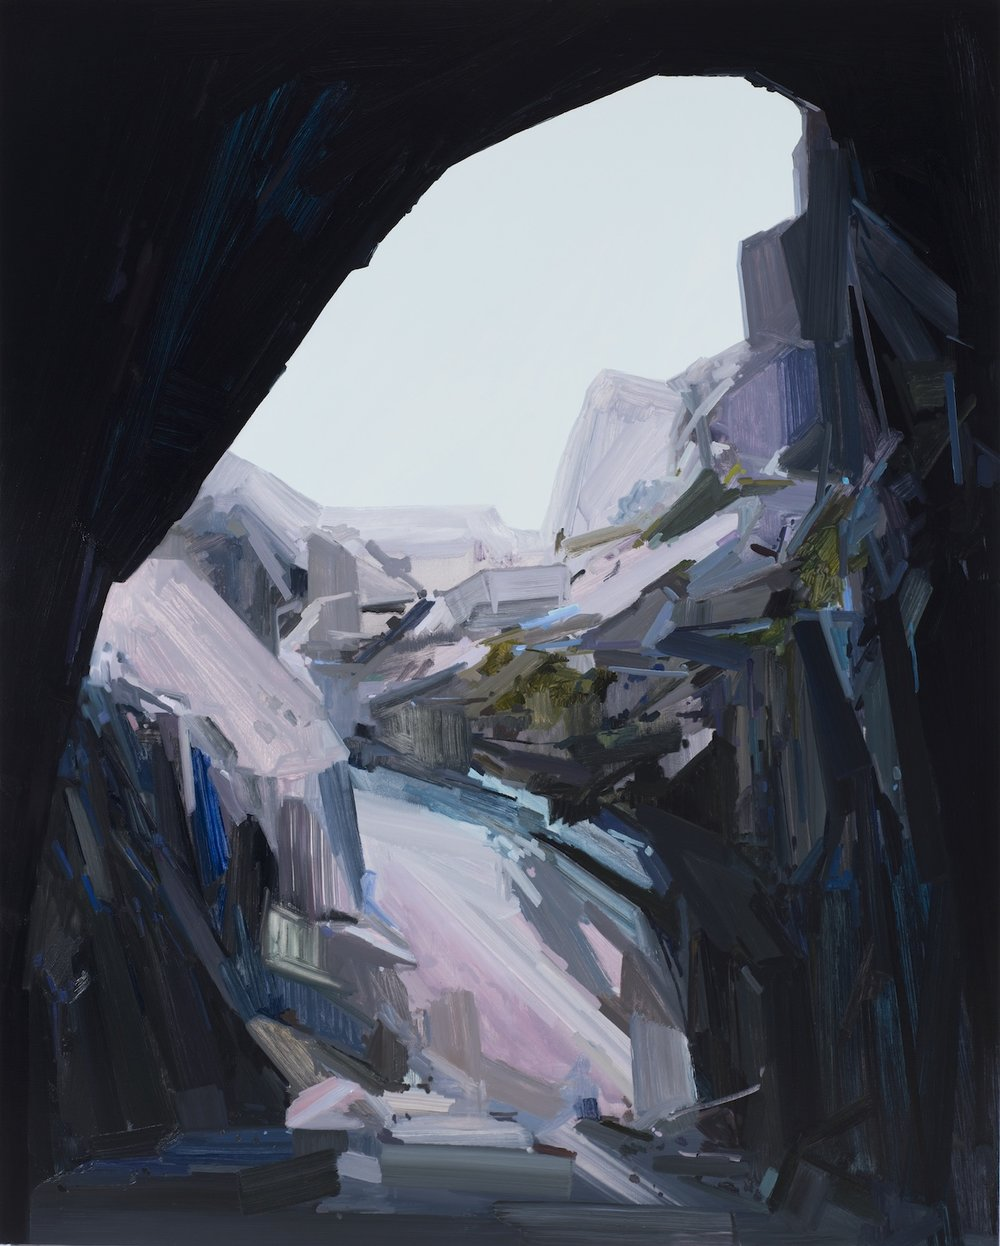 Cave , 2015, Oil on canvas, 96 x 78""